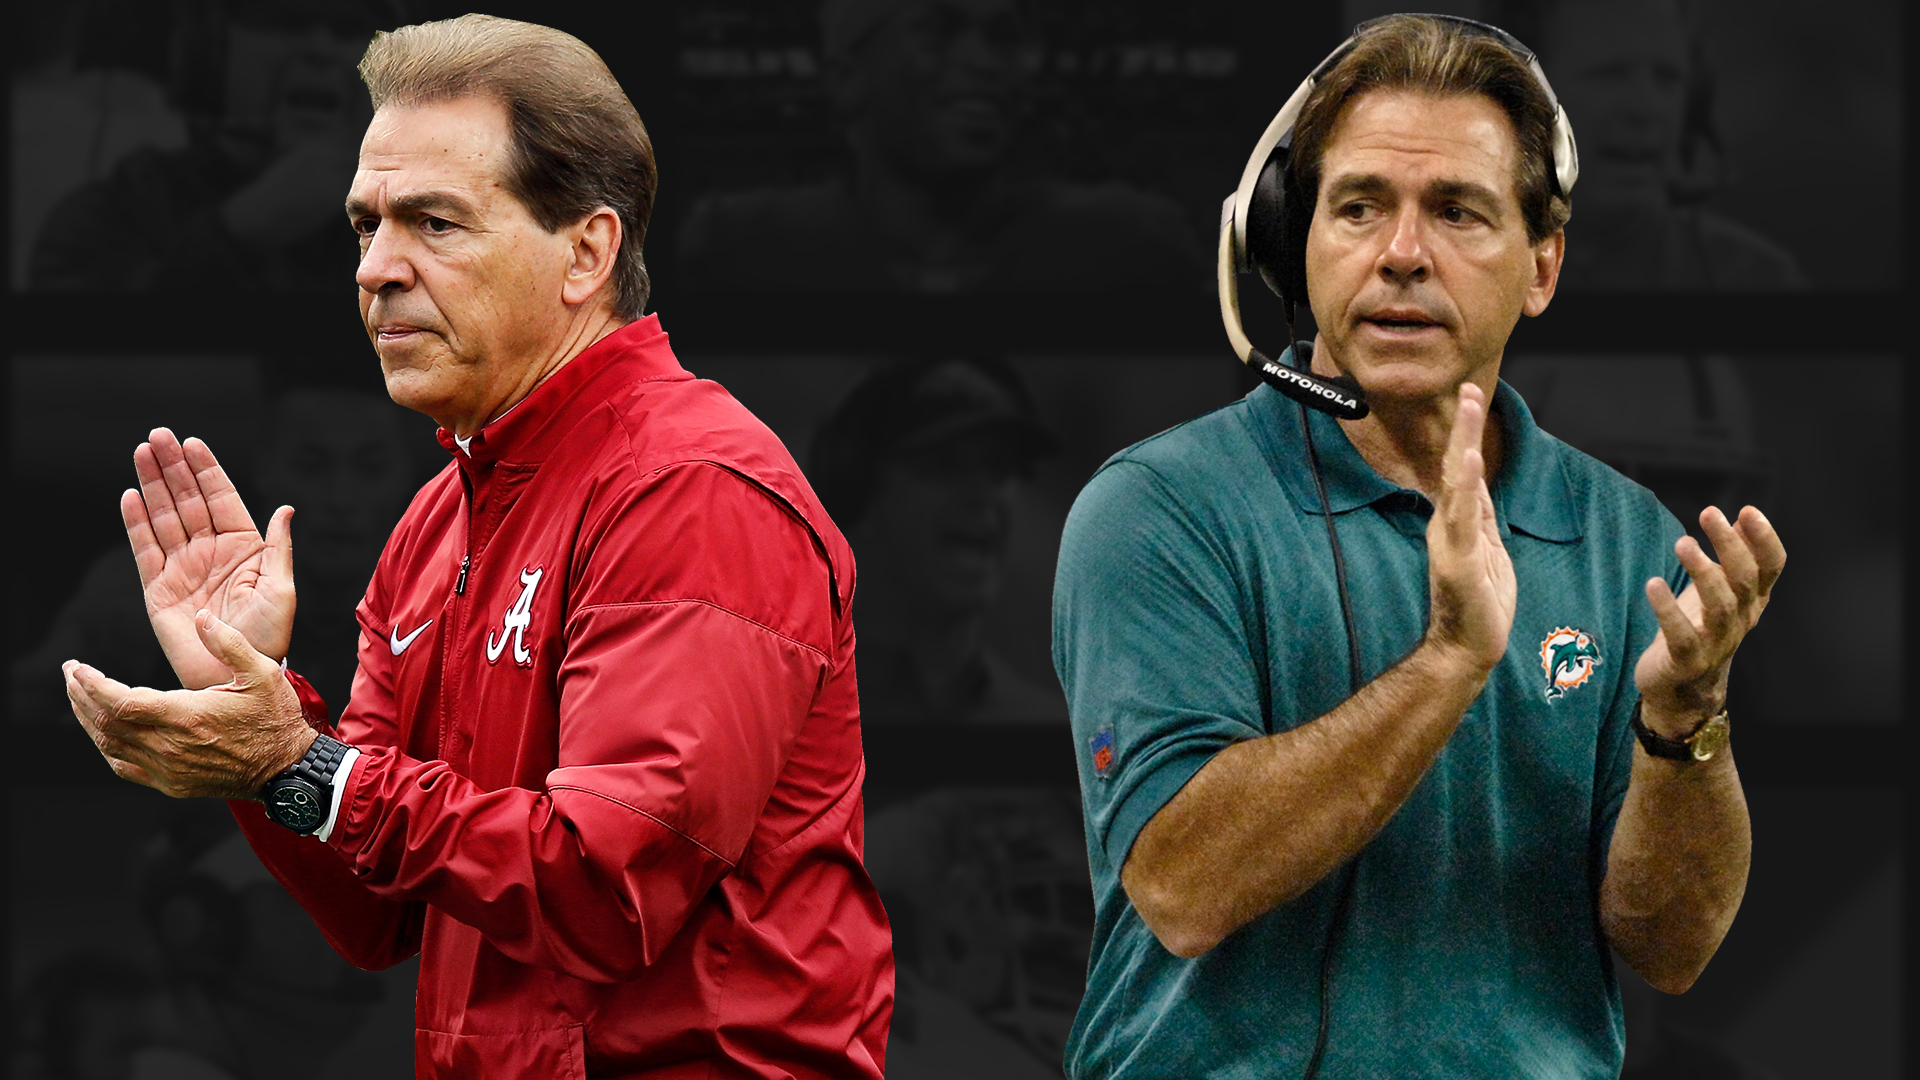 Nick-Saban-NFL-042518-Getty-FTR